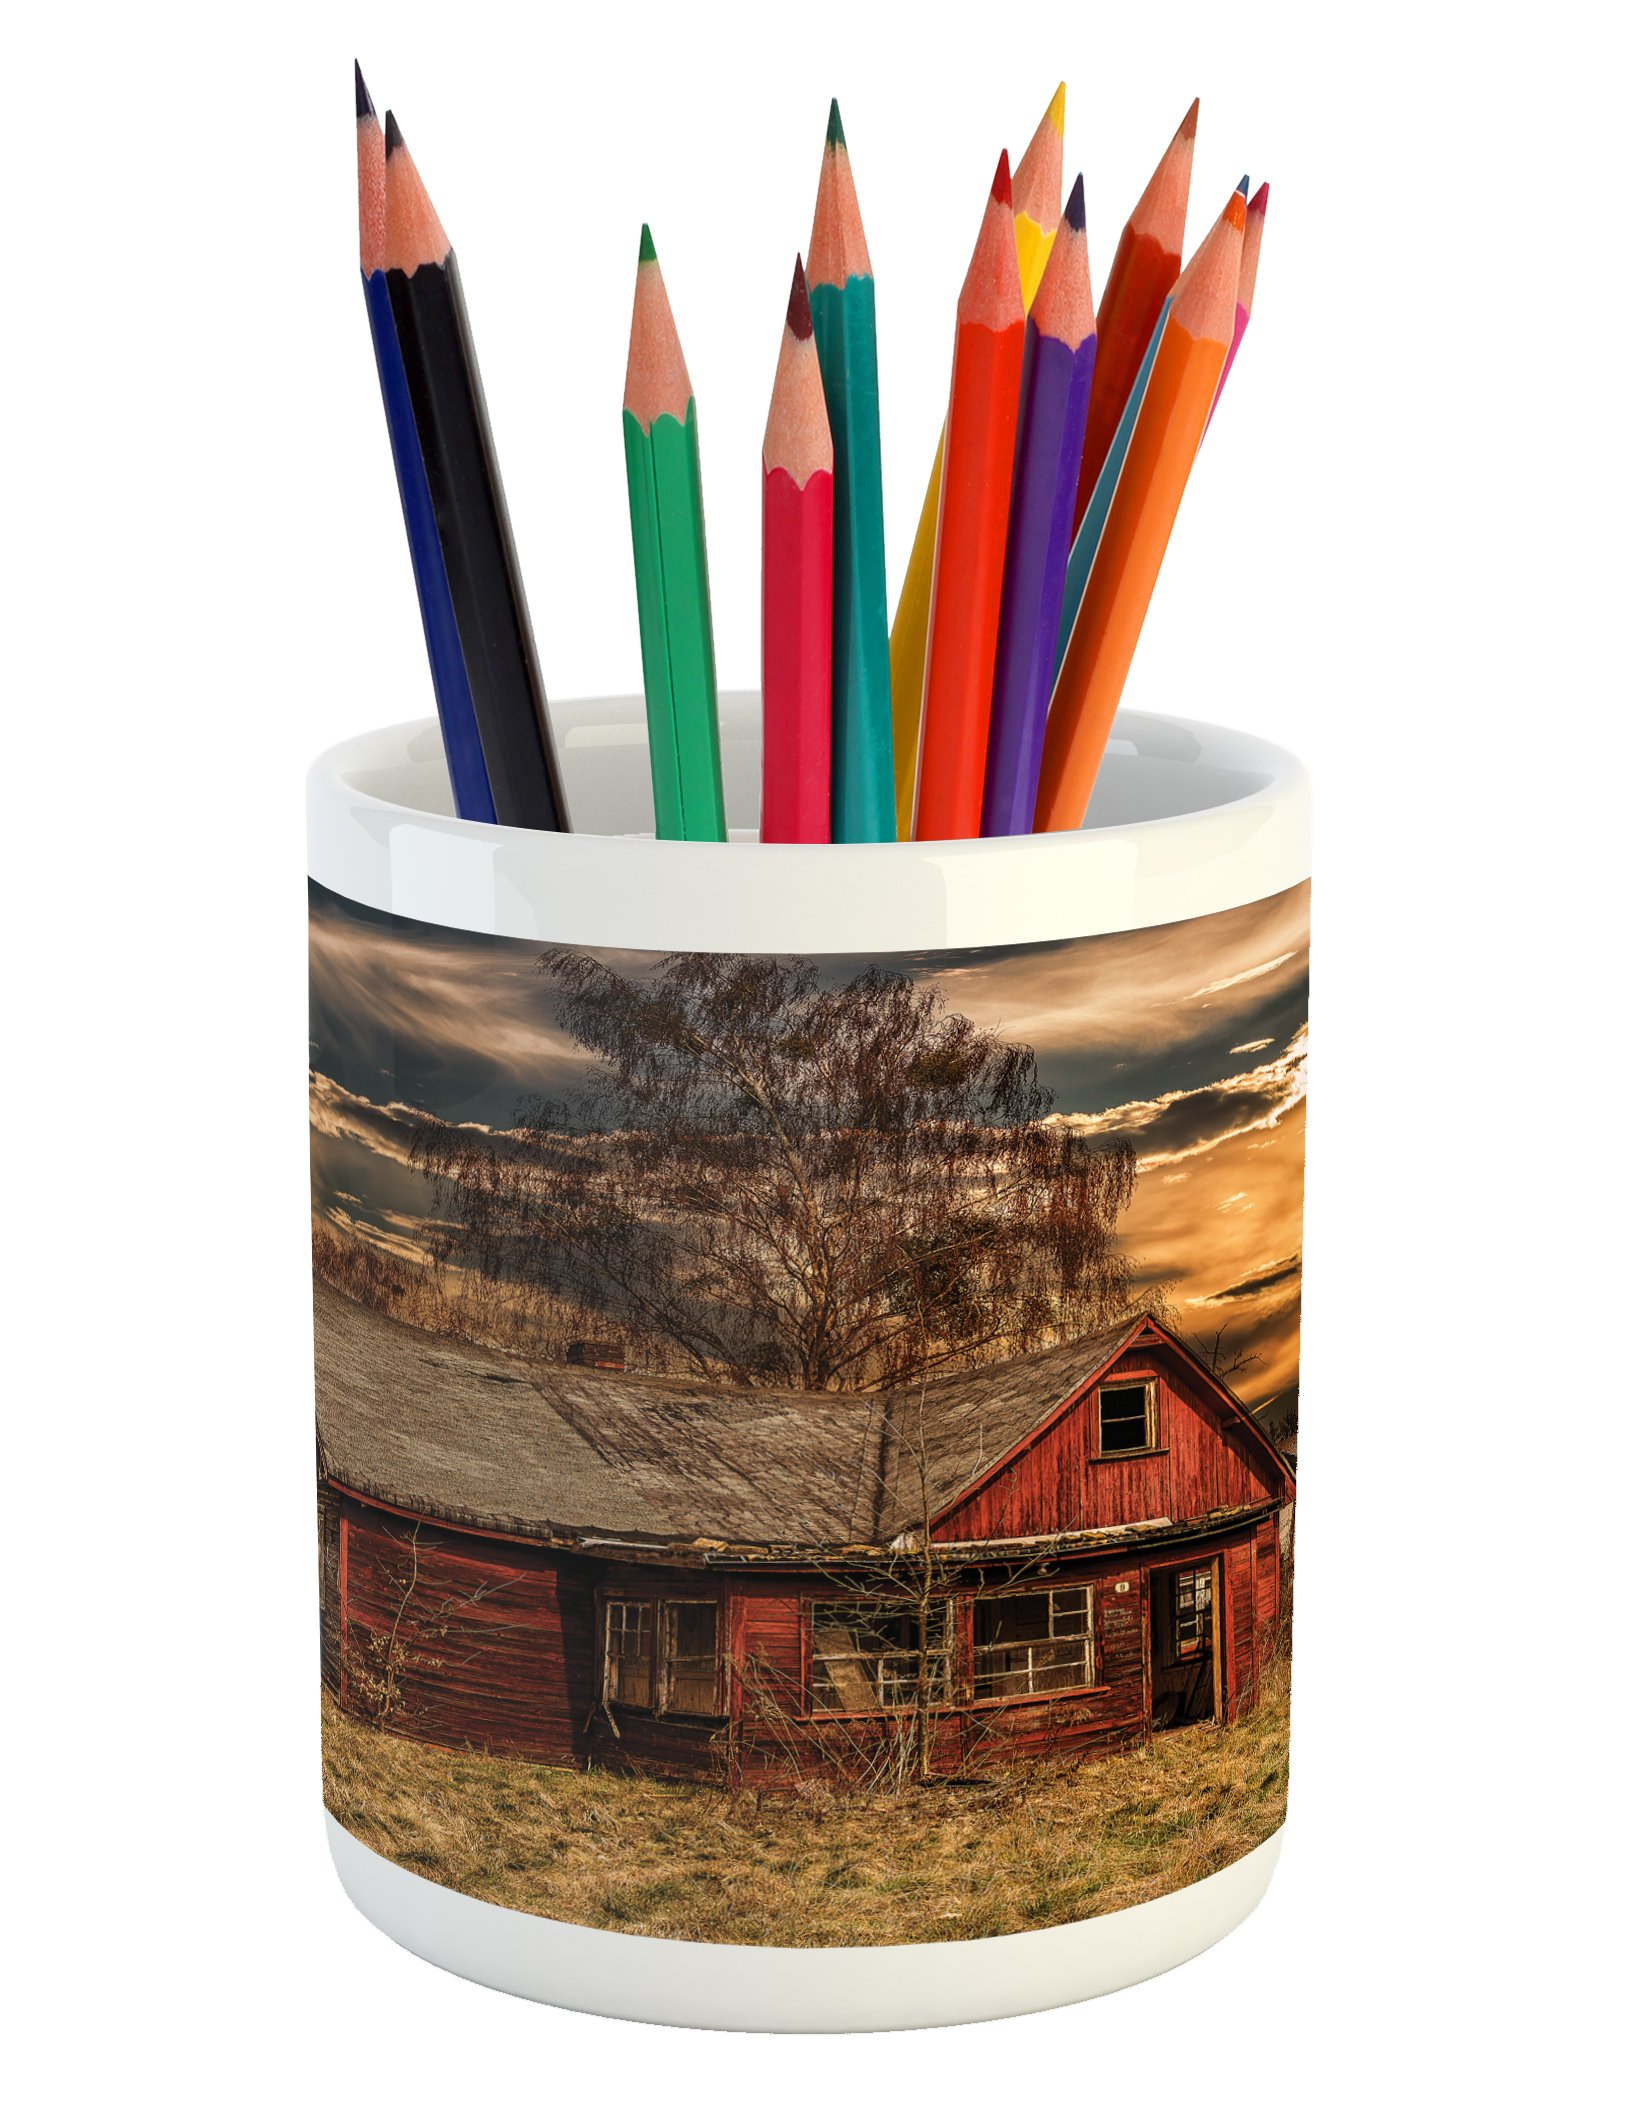 Ambesonne Scenery Pencil Pen Holder, Scary Horror Movie Themed Abandoned House in Pale Grass Garden Sunset Photo Print, Printed Ceramic Pencil Pen Holder for Desk Office Accessory, Multicolor